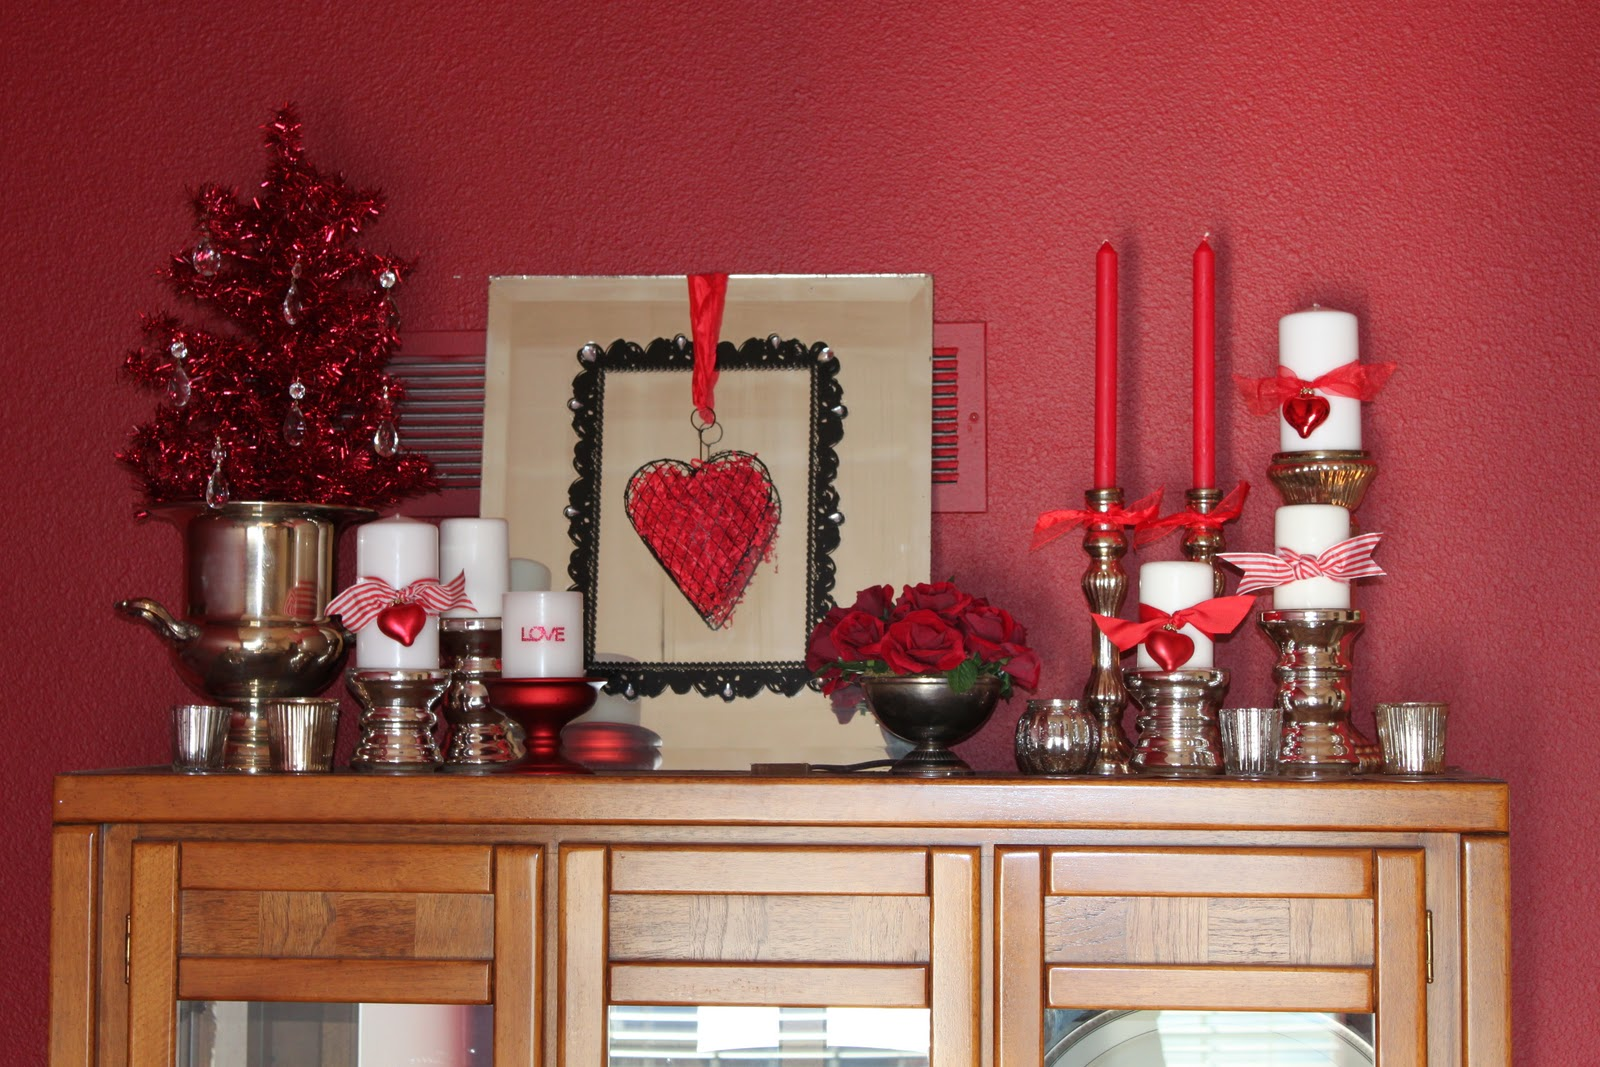 Interior design ideas january 2014 interior design ideas for Room decor ideas for valentines day